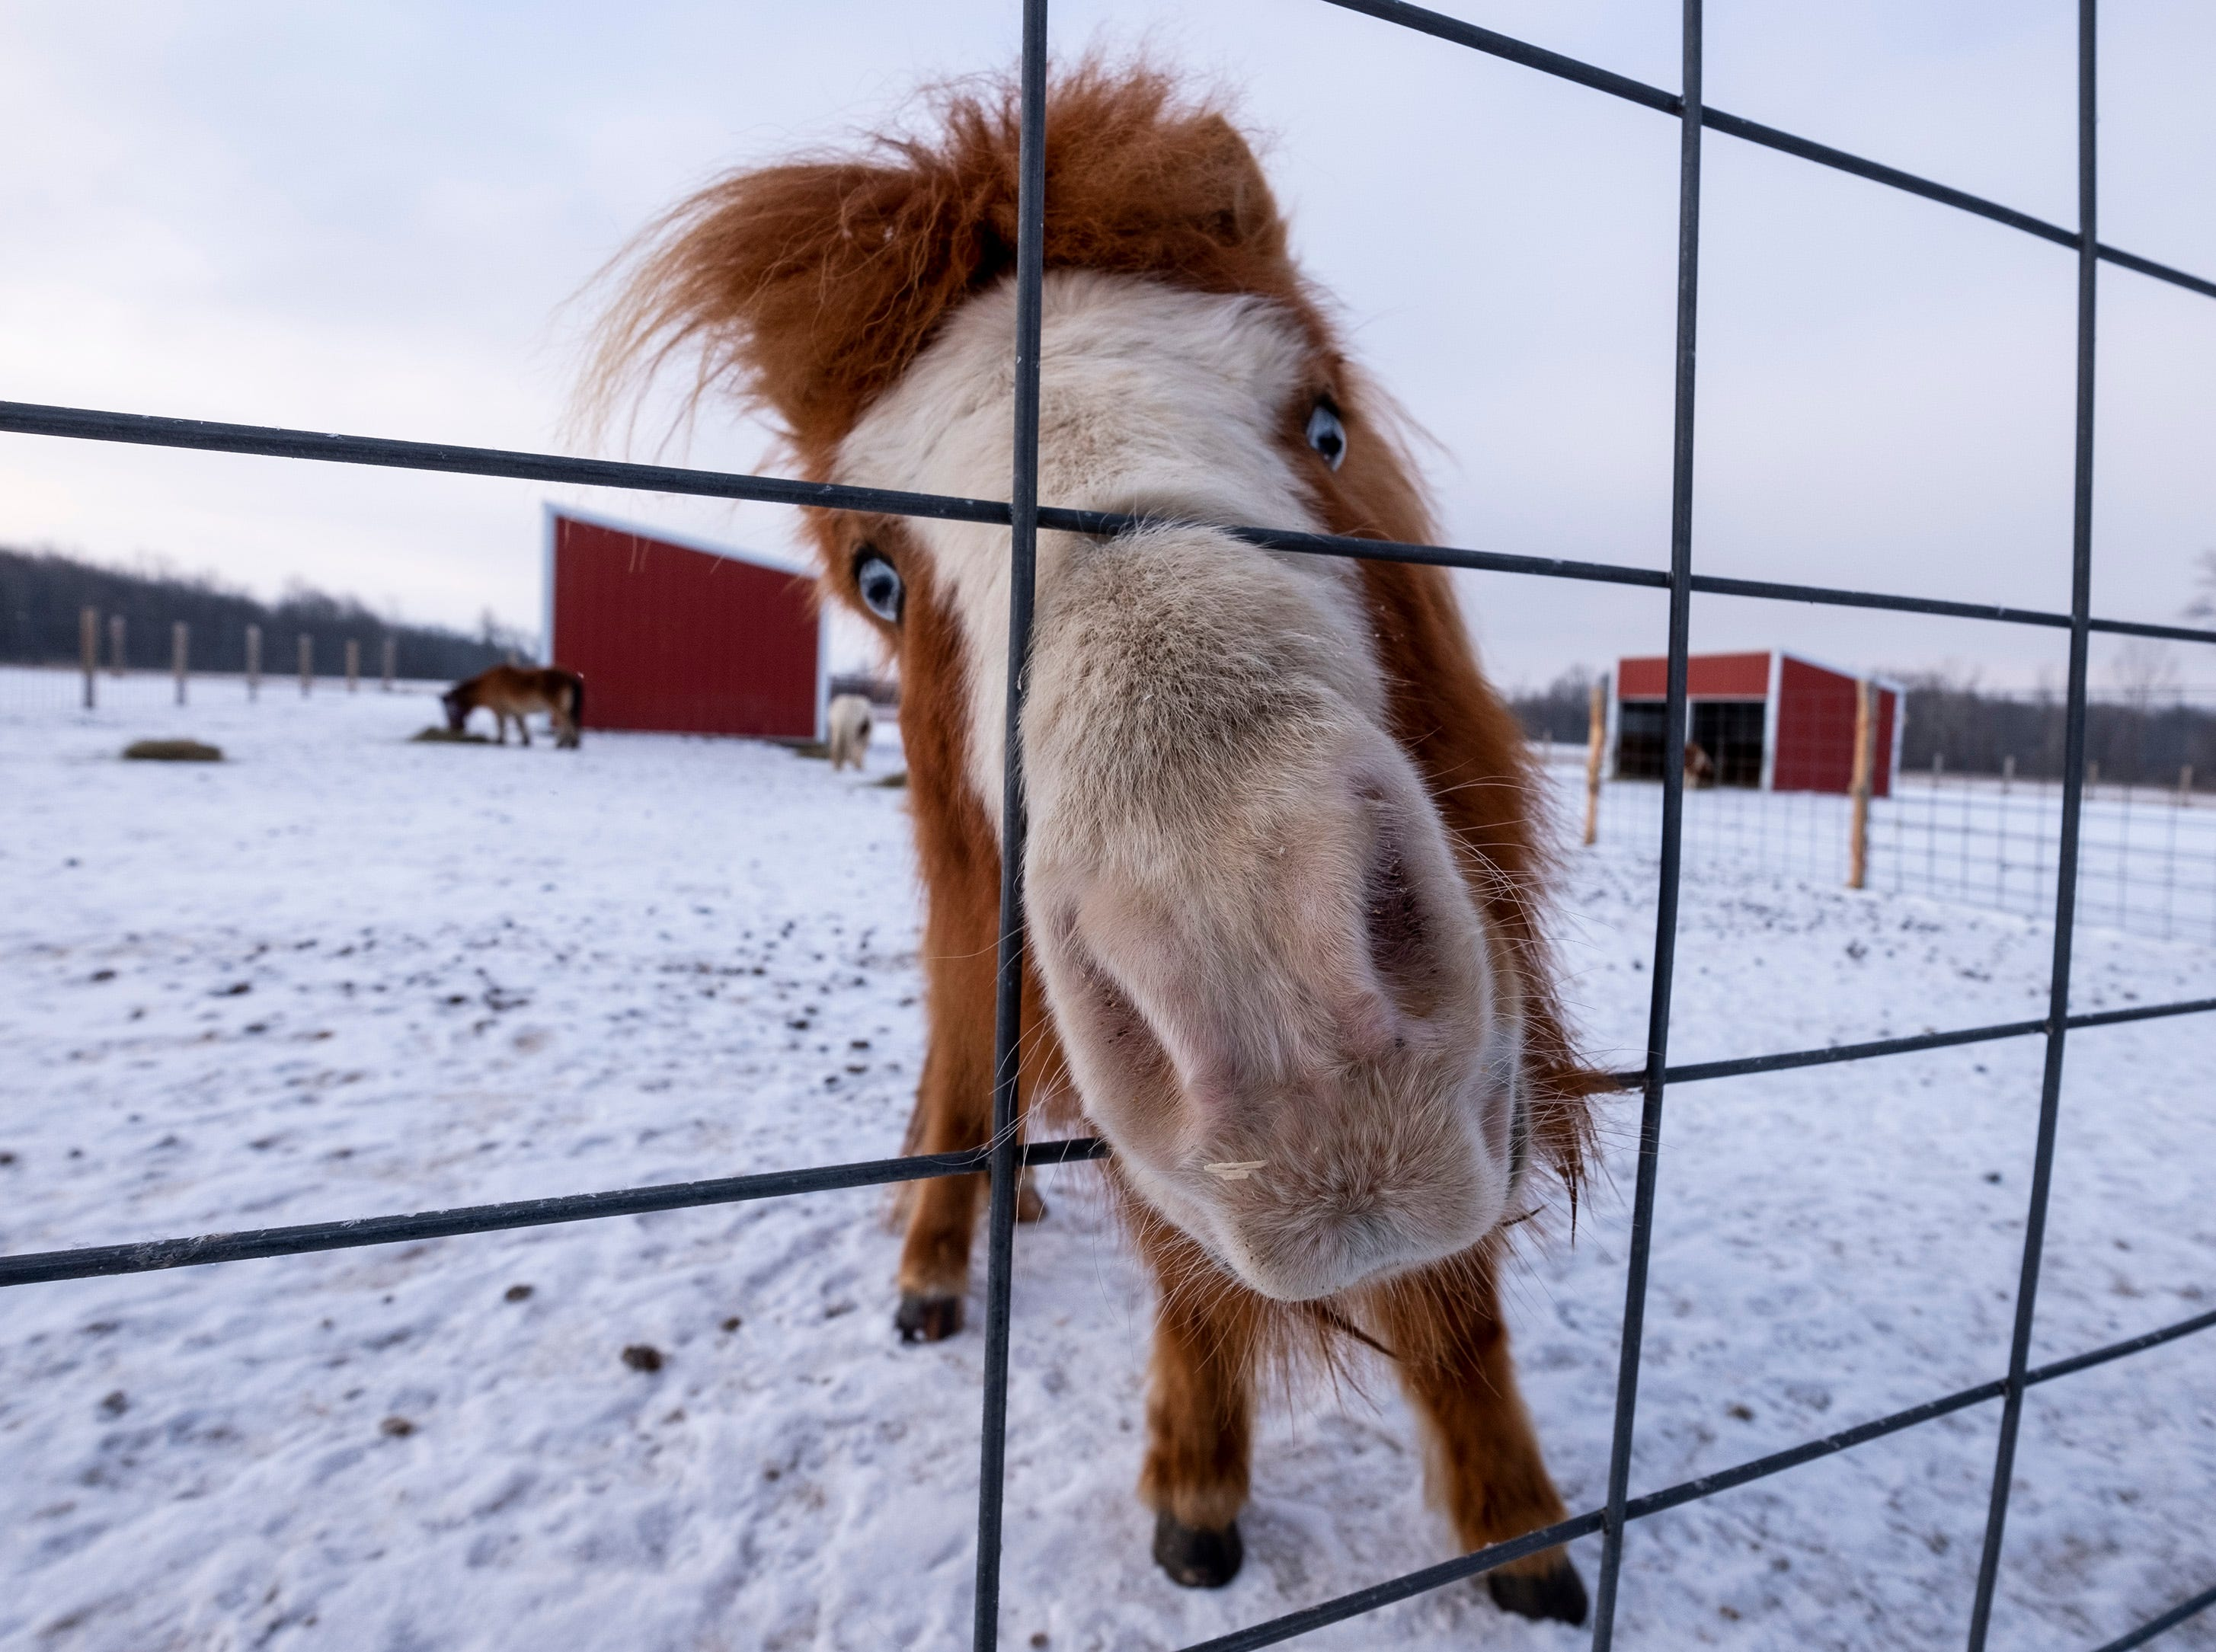 Wyatt, an 8-year-old mini horse, sticks his nose through the fence at Saving Grace Miniature Horse Rescue. Tammie Miller, the farm's owner, rescued Wyatt's mother, who was pregnant. After a year passed and Wyatt hadn't been adopted, Miller decided to adopt him for her grandkids.